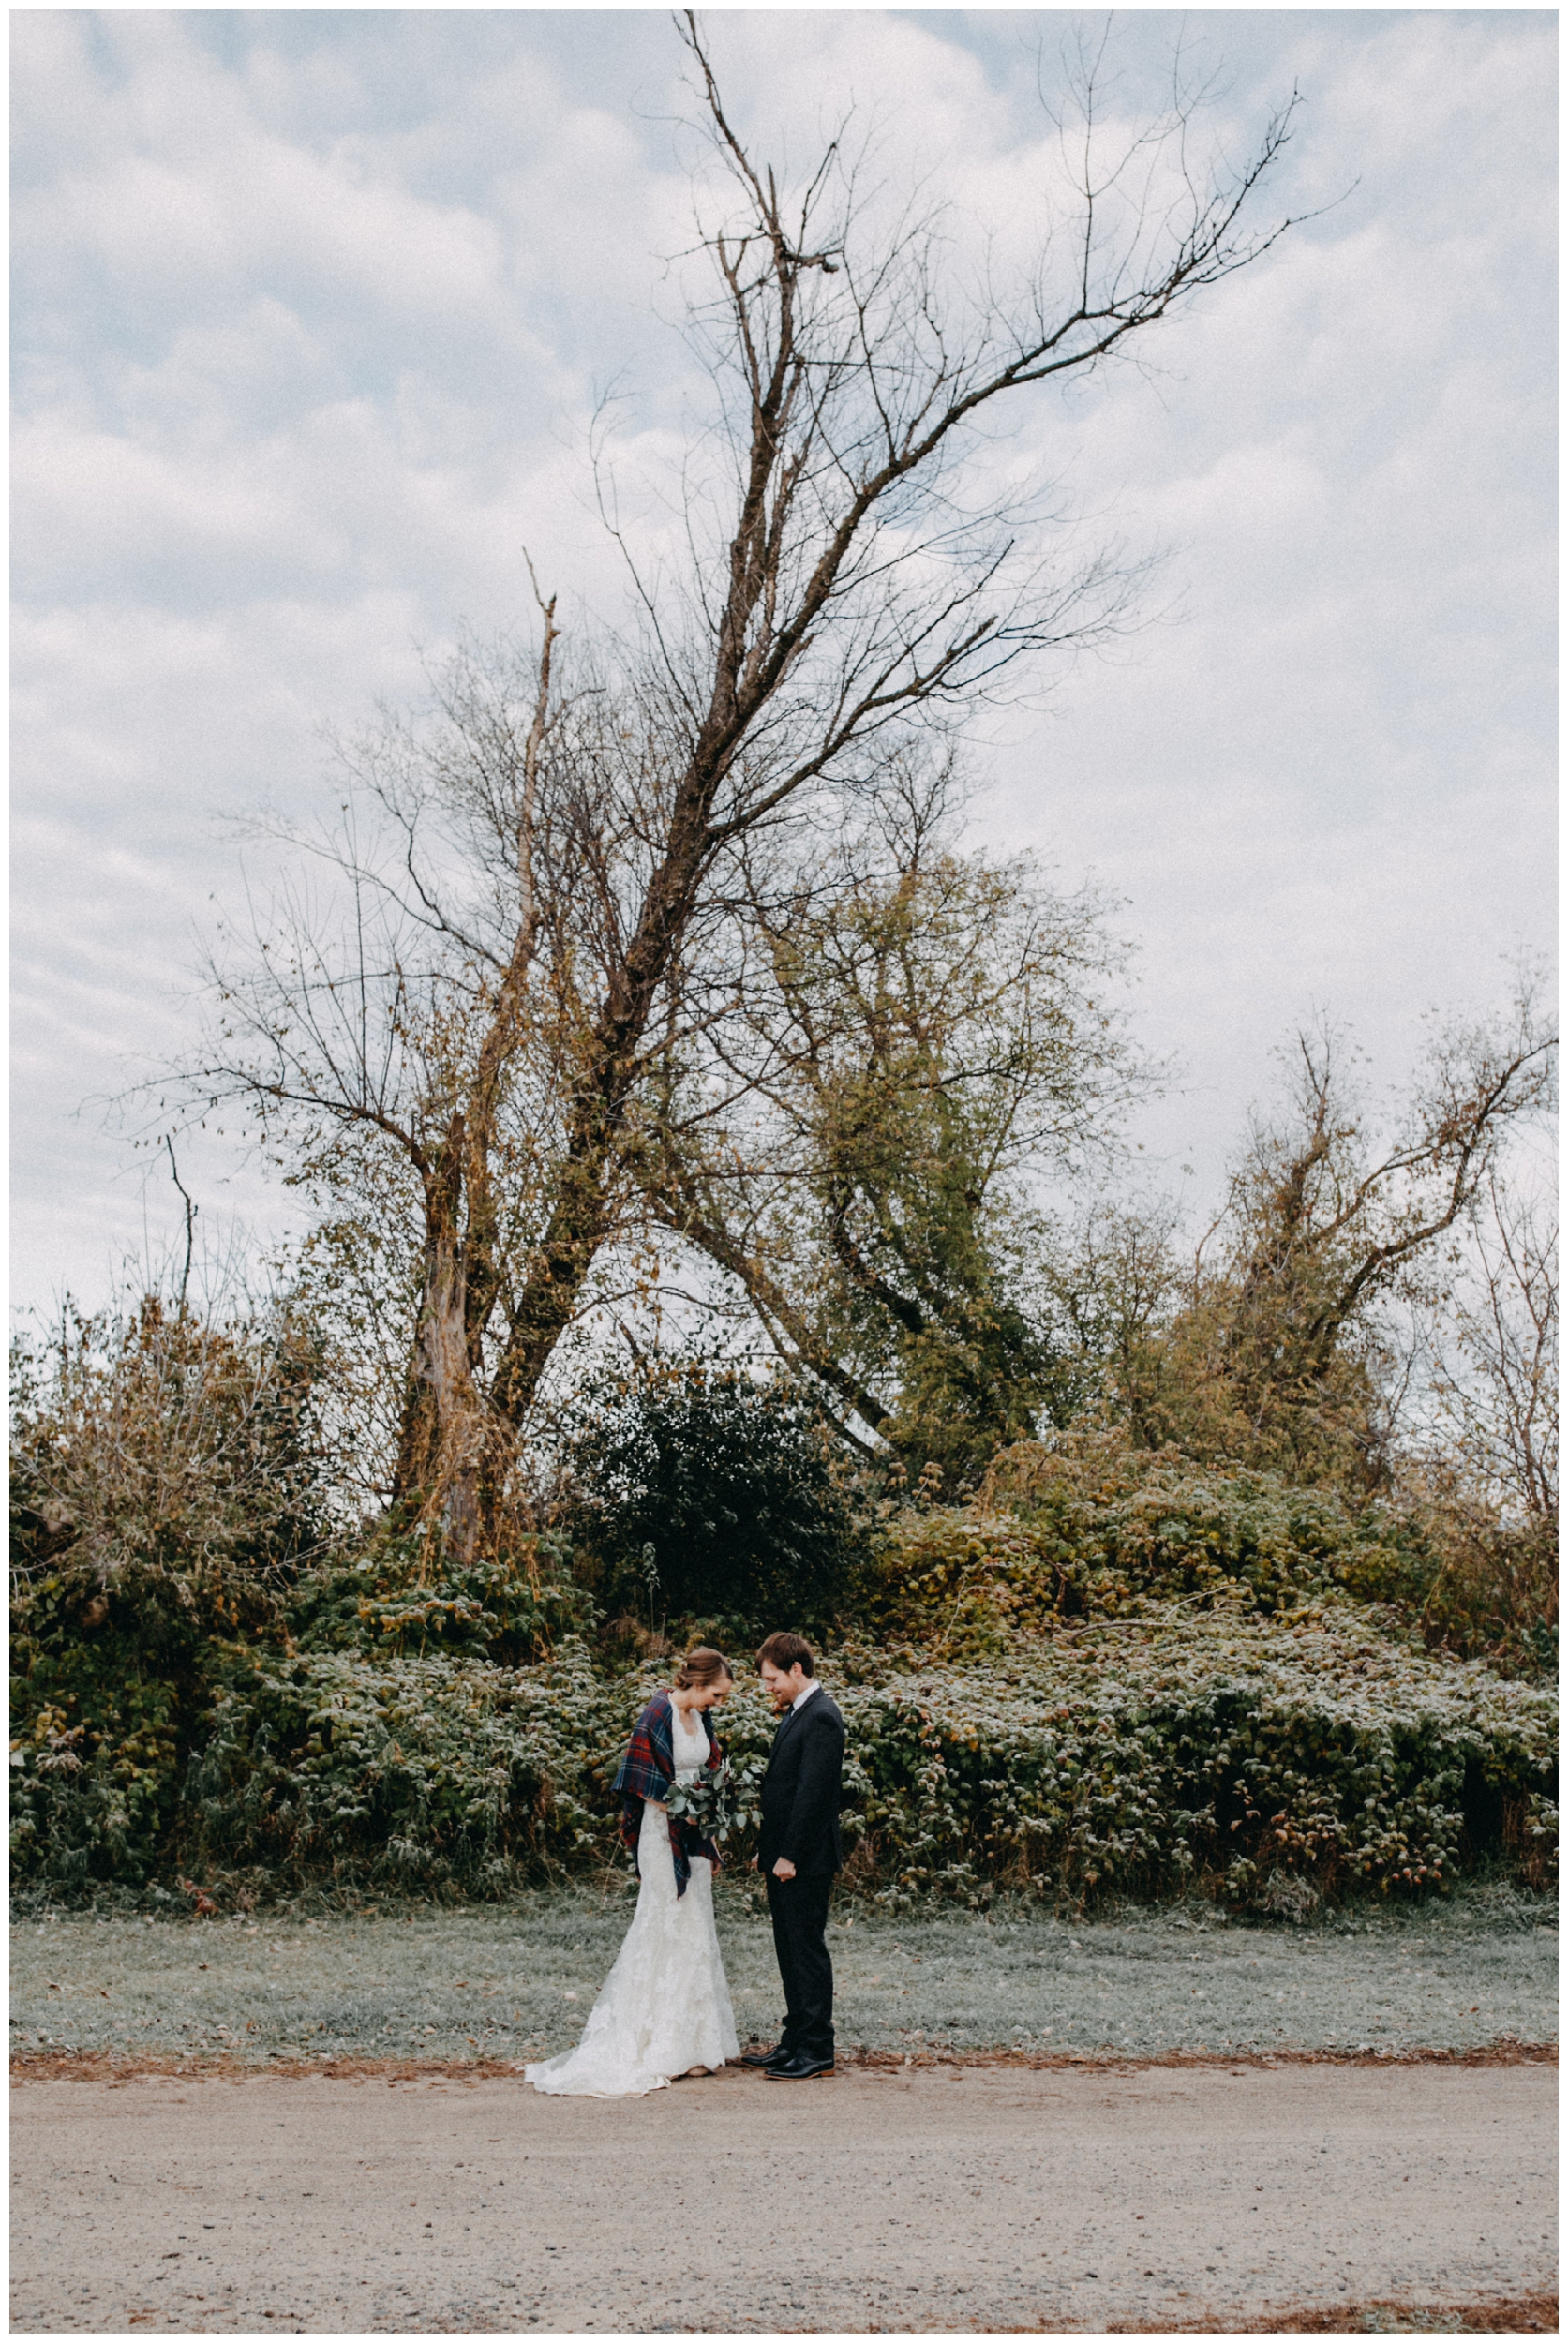 October wedding at the Northland Arboretum